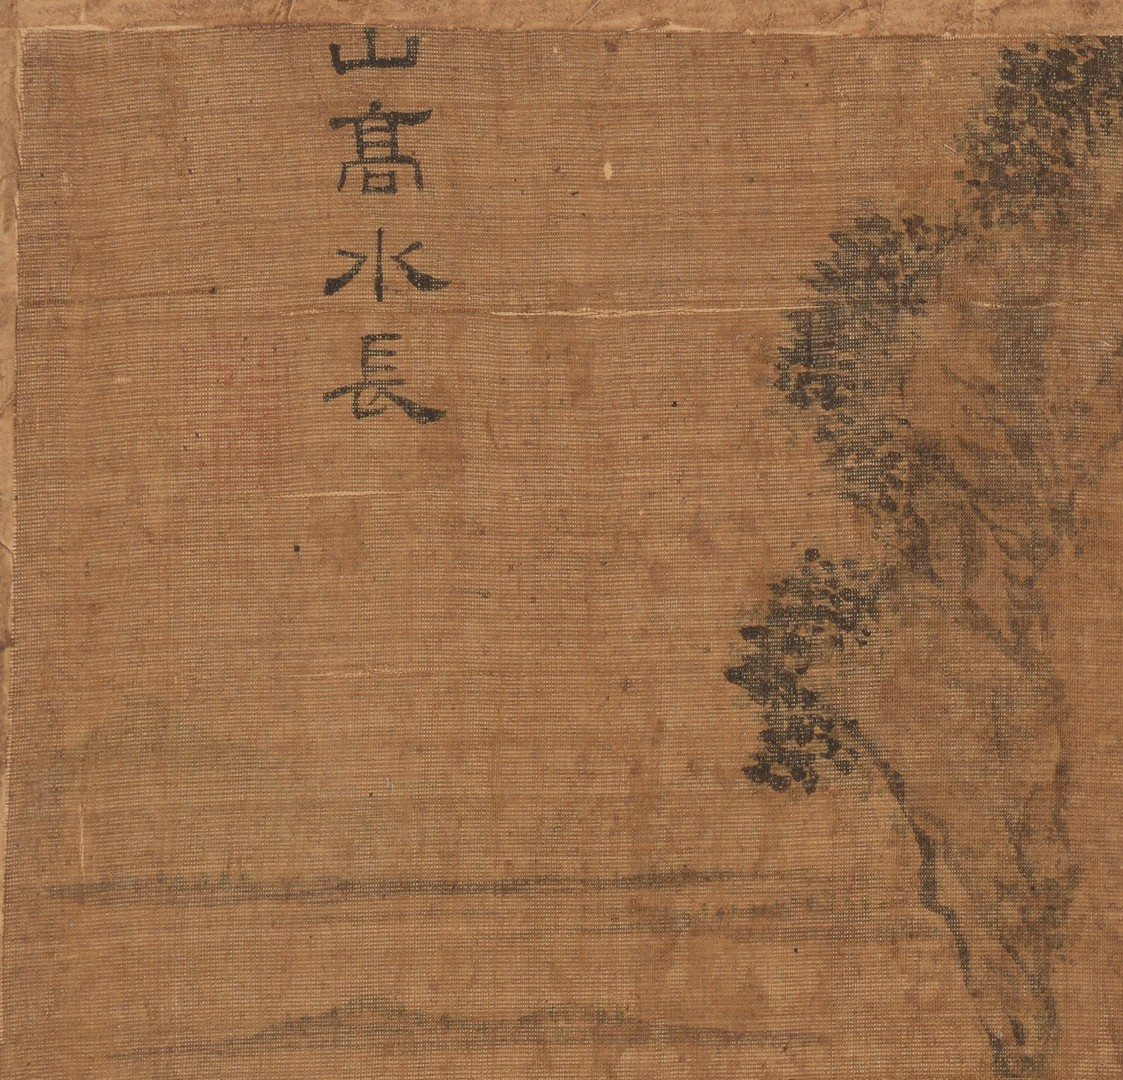 Lot 17: Chinese Scroll w/ Horse & 2 Scroll Fragments